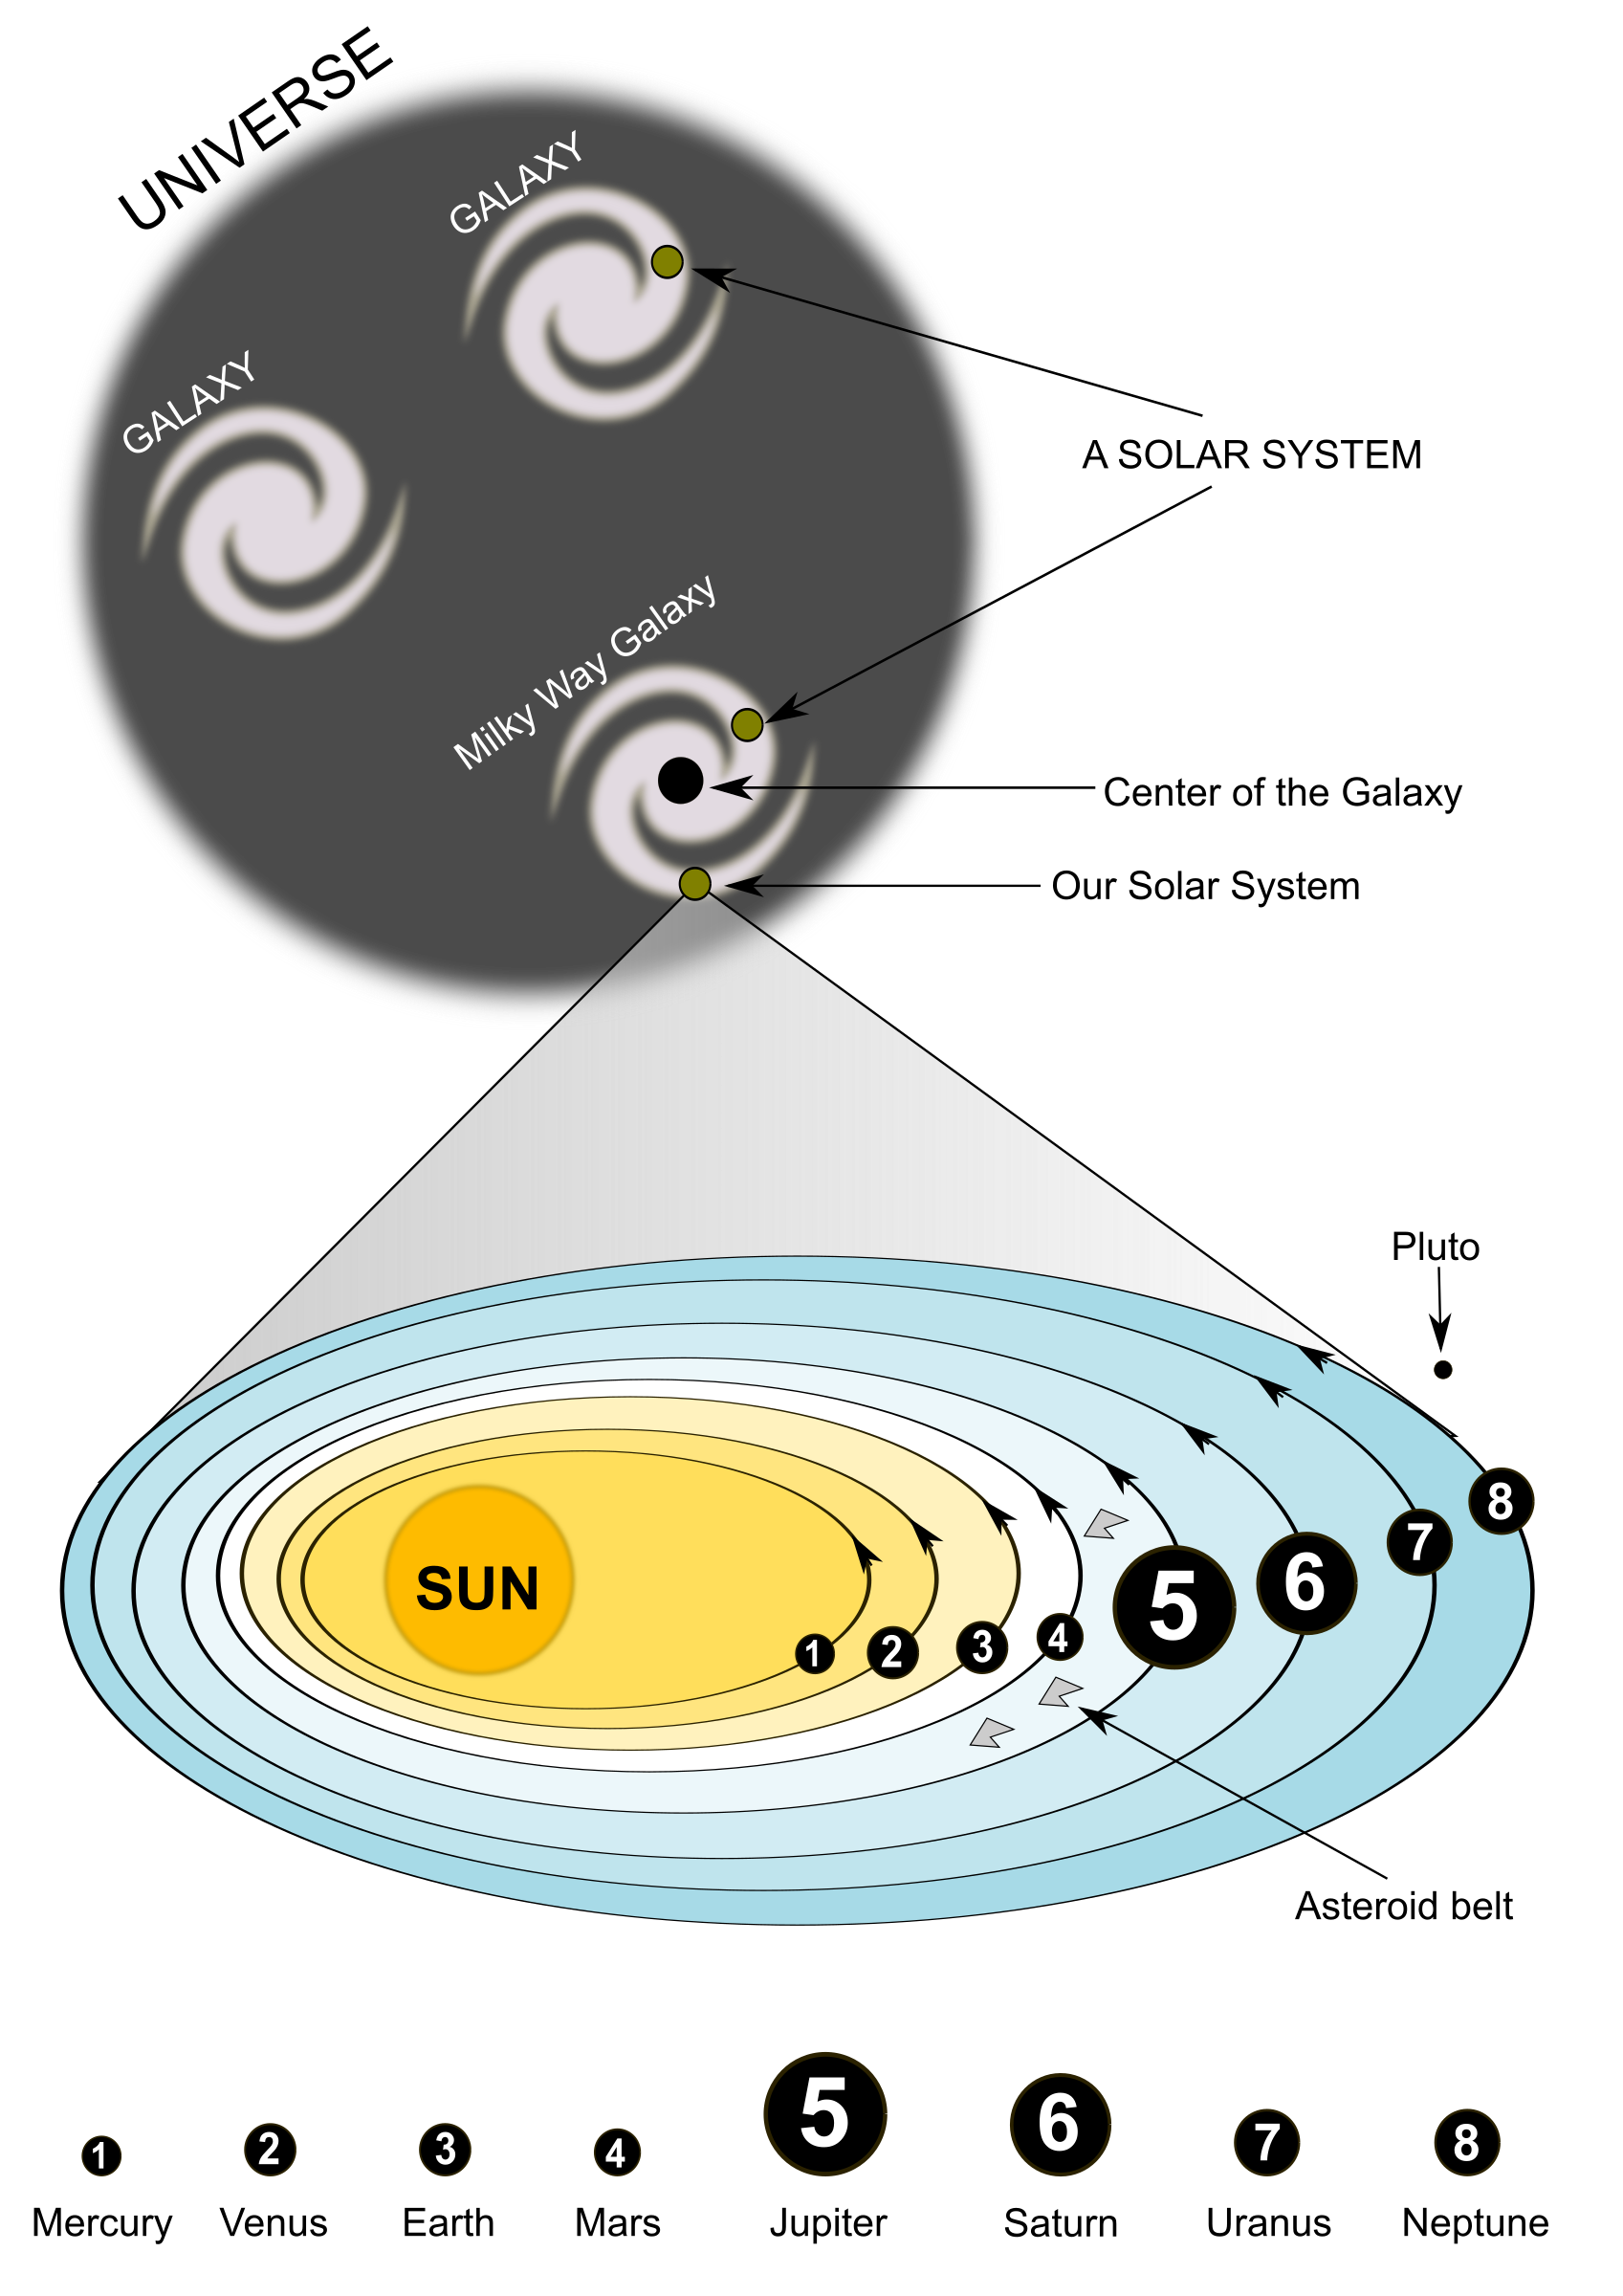 Asteroid clipart solar system space. Our big image png